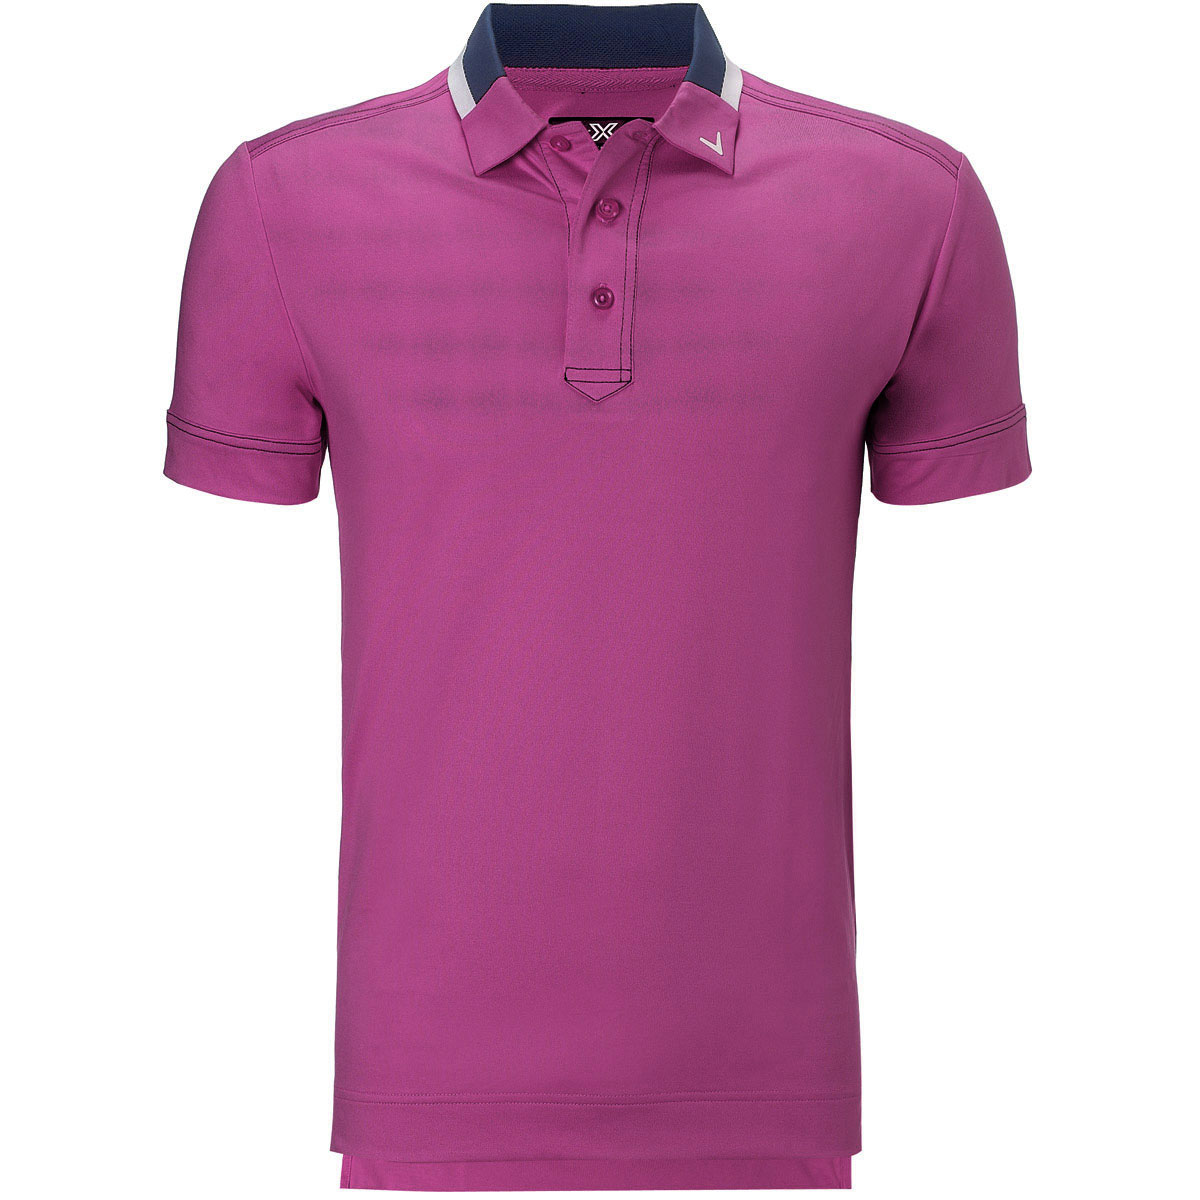 Callaway golf mens x range contrast collar slim fit polo for Mens xs golf shirts